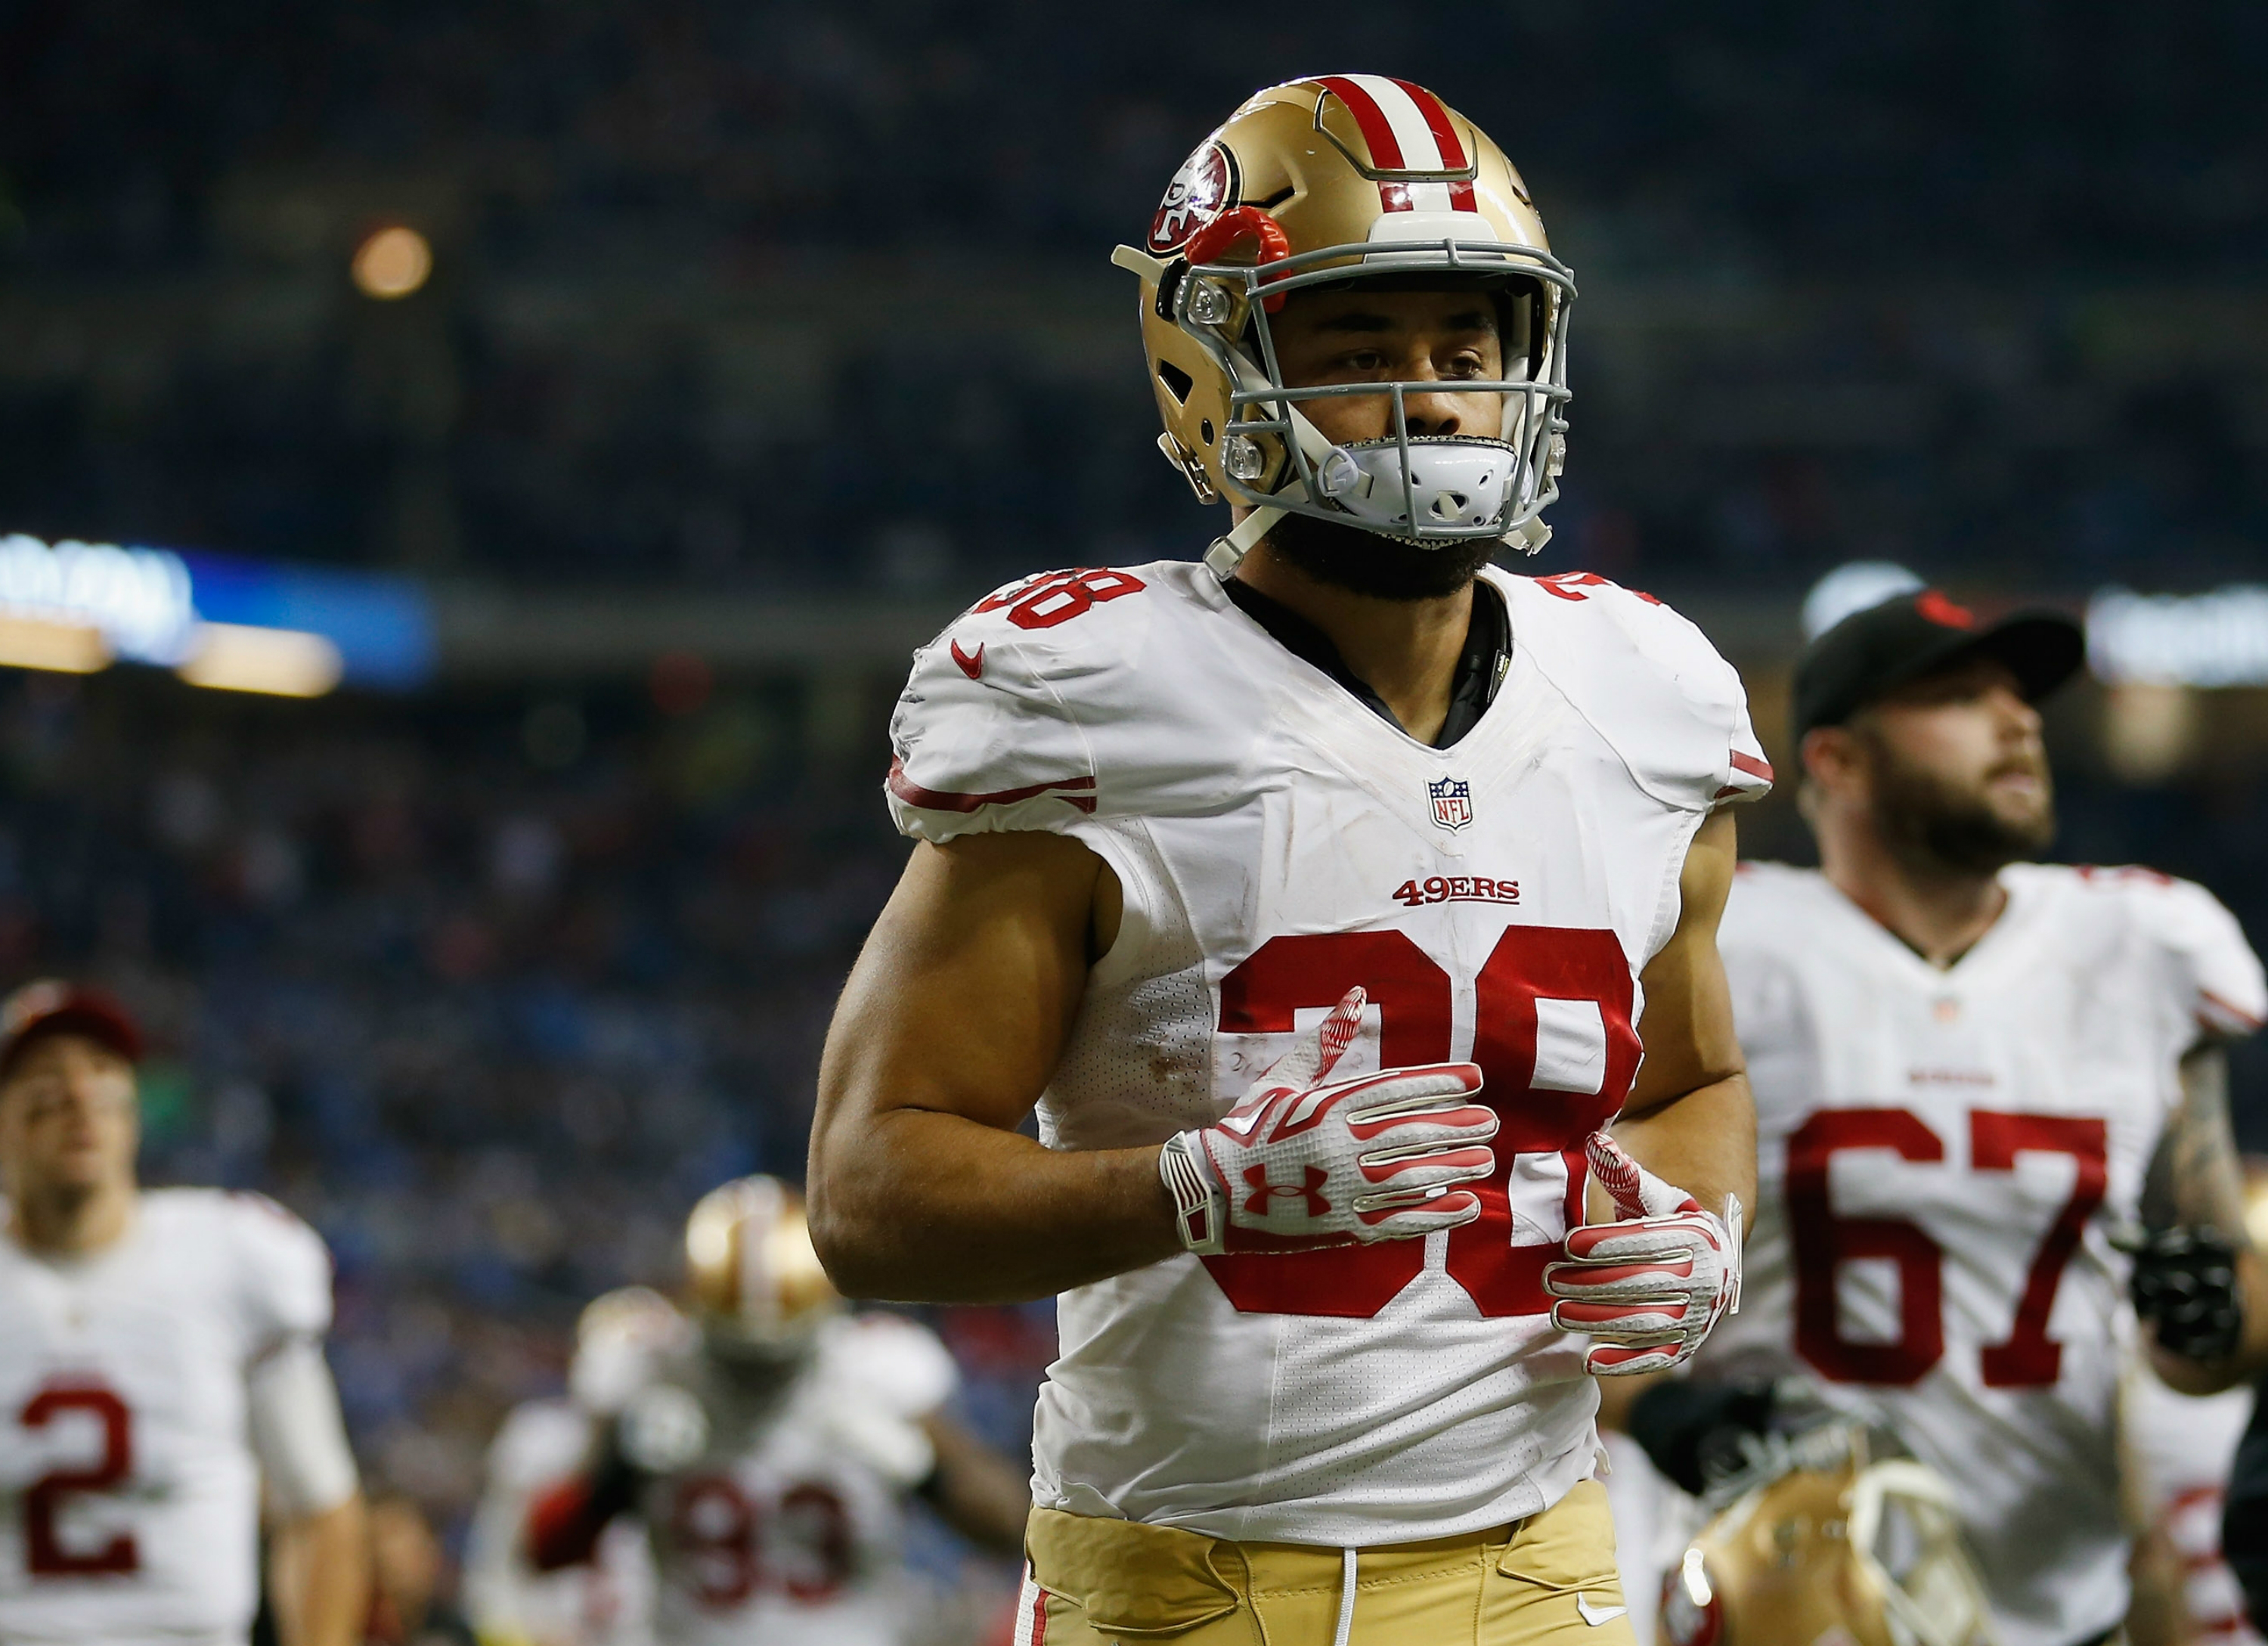 Jarryd Hayne accused of rape in United States  civil lawsuit